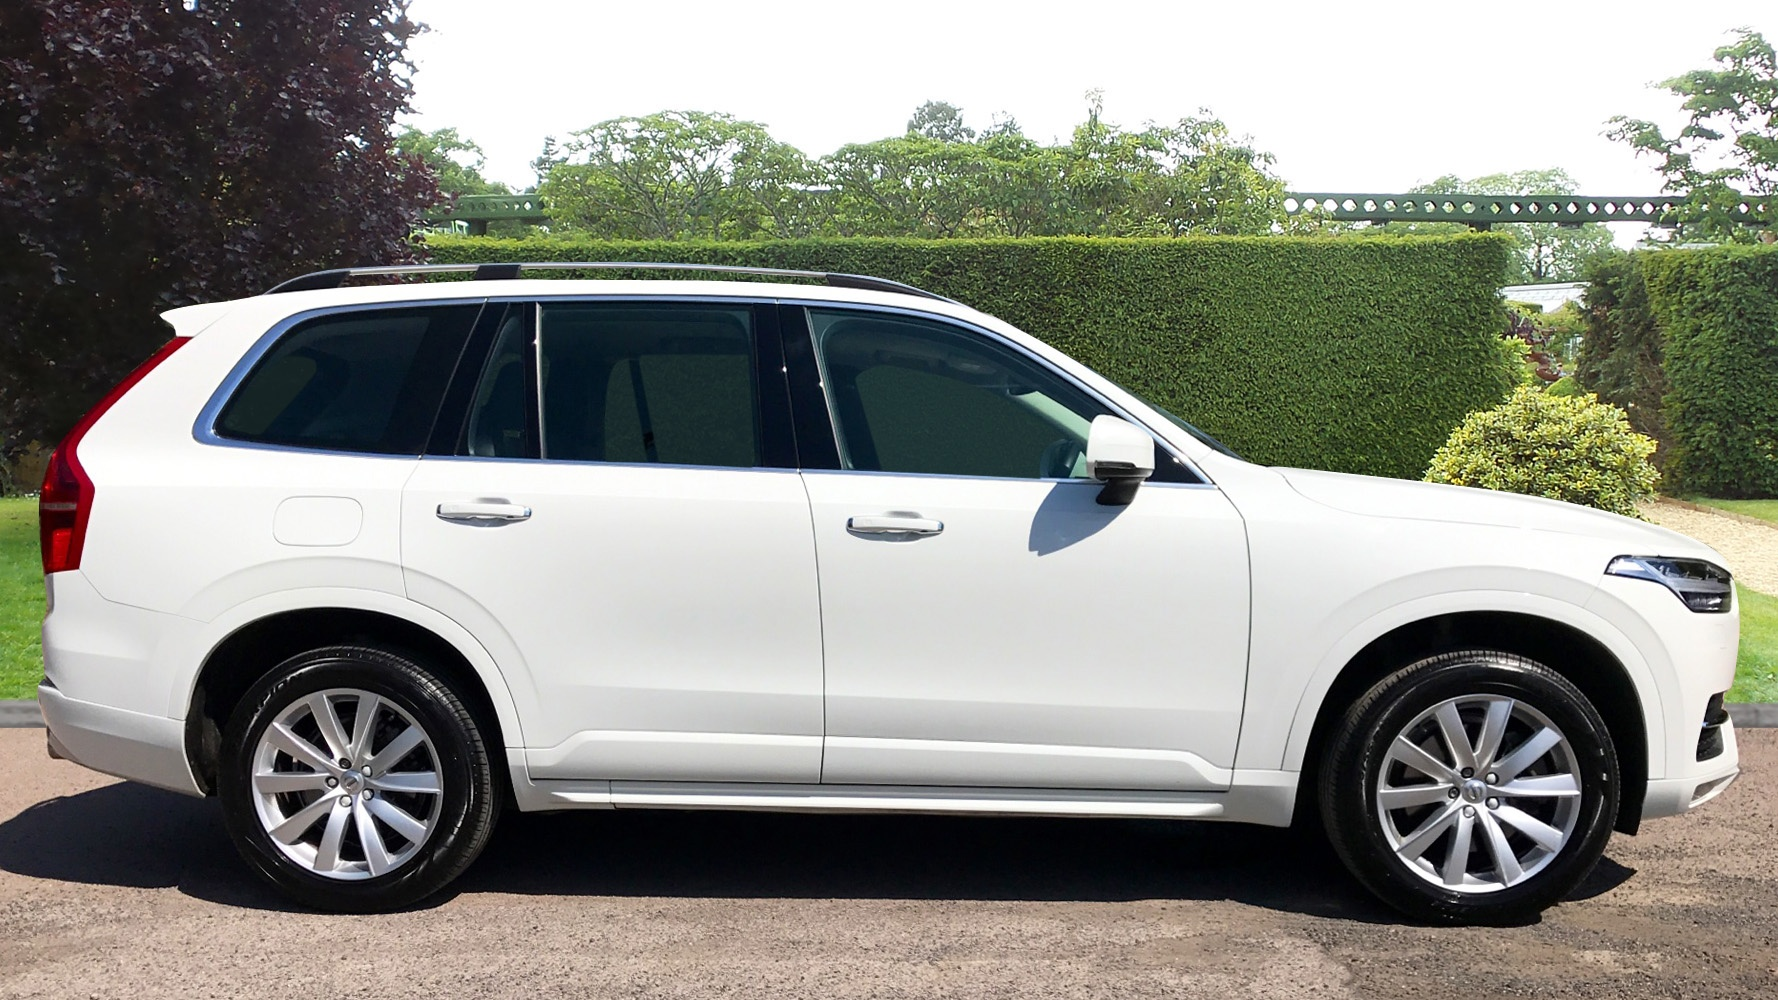 volvo xc90 d5 momentum used vehicle by parkside orpington. Black Bedroom Furniture Sets. Home Design Ideas